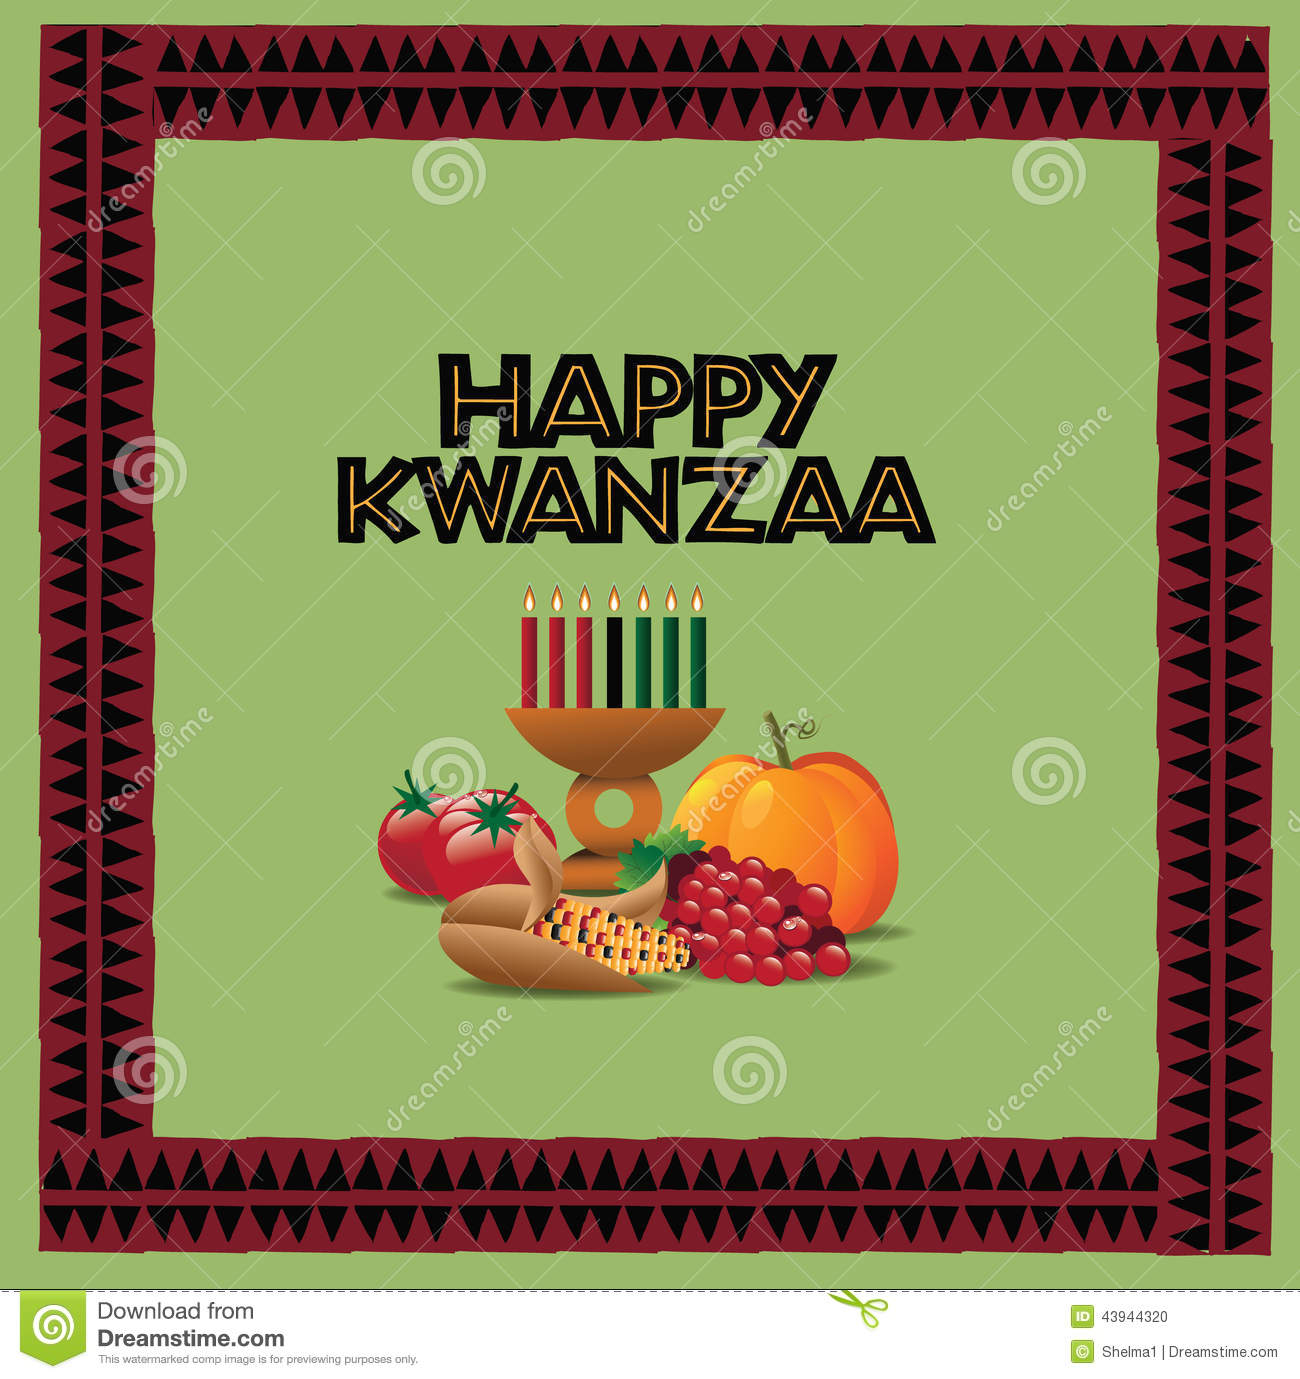 Happy kwanzaa greeting card design stock vector illustration of happy kwanzaa greeting card design m4hsunfo